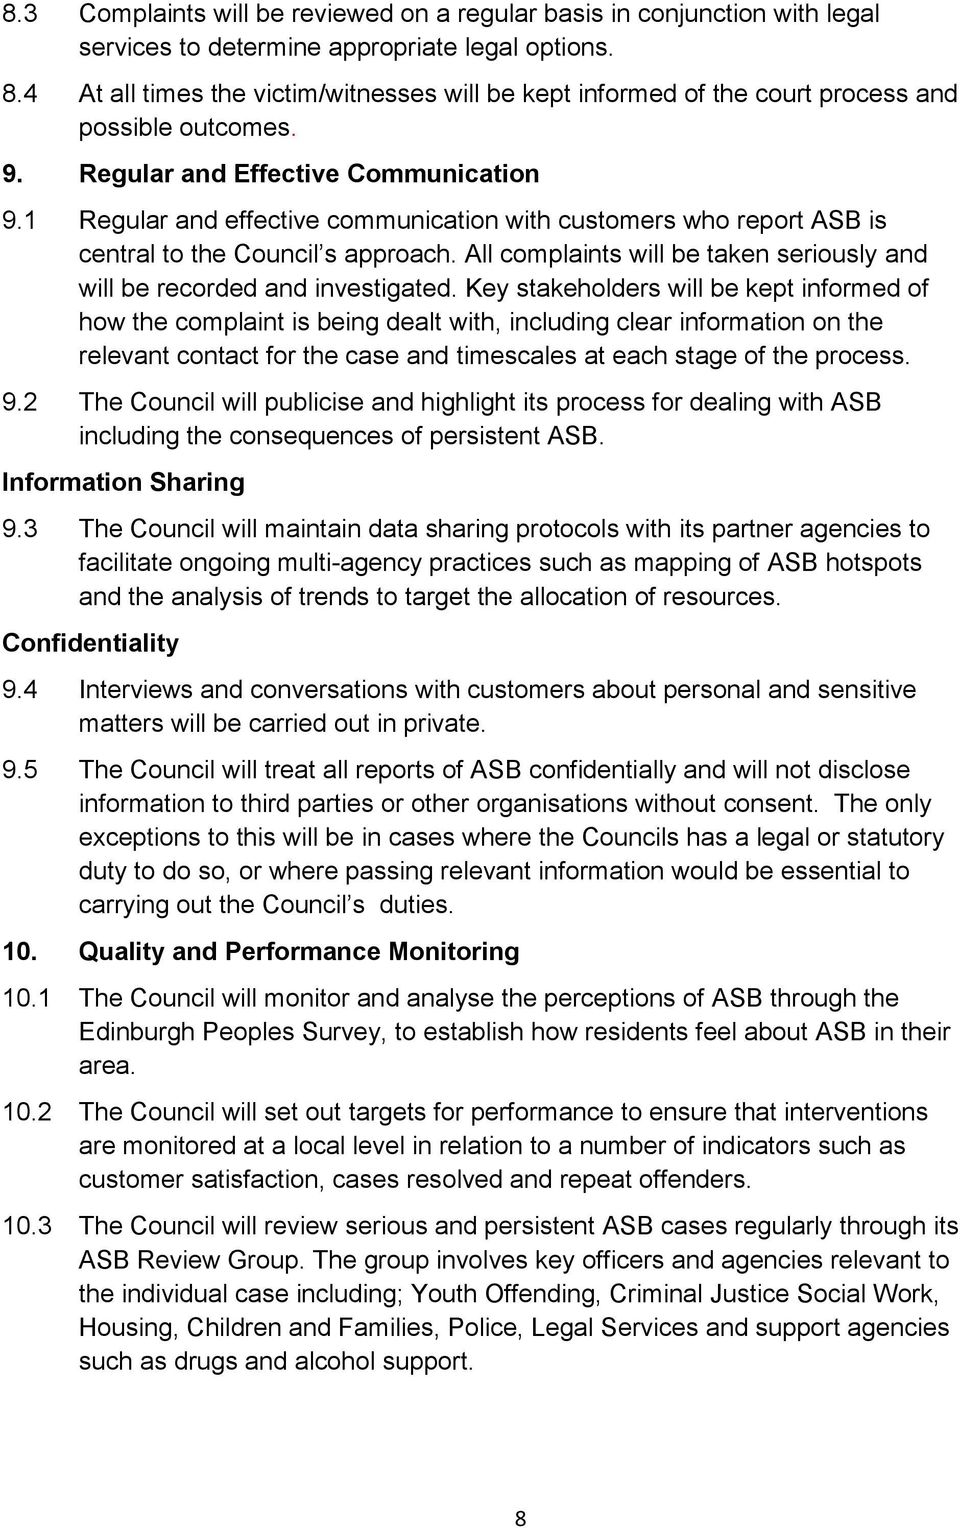 1 Regular and effective communication with customers who report ASB is central to the Council s approach. All complaints will be taken seriously and will be recorded and investigated.